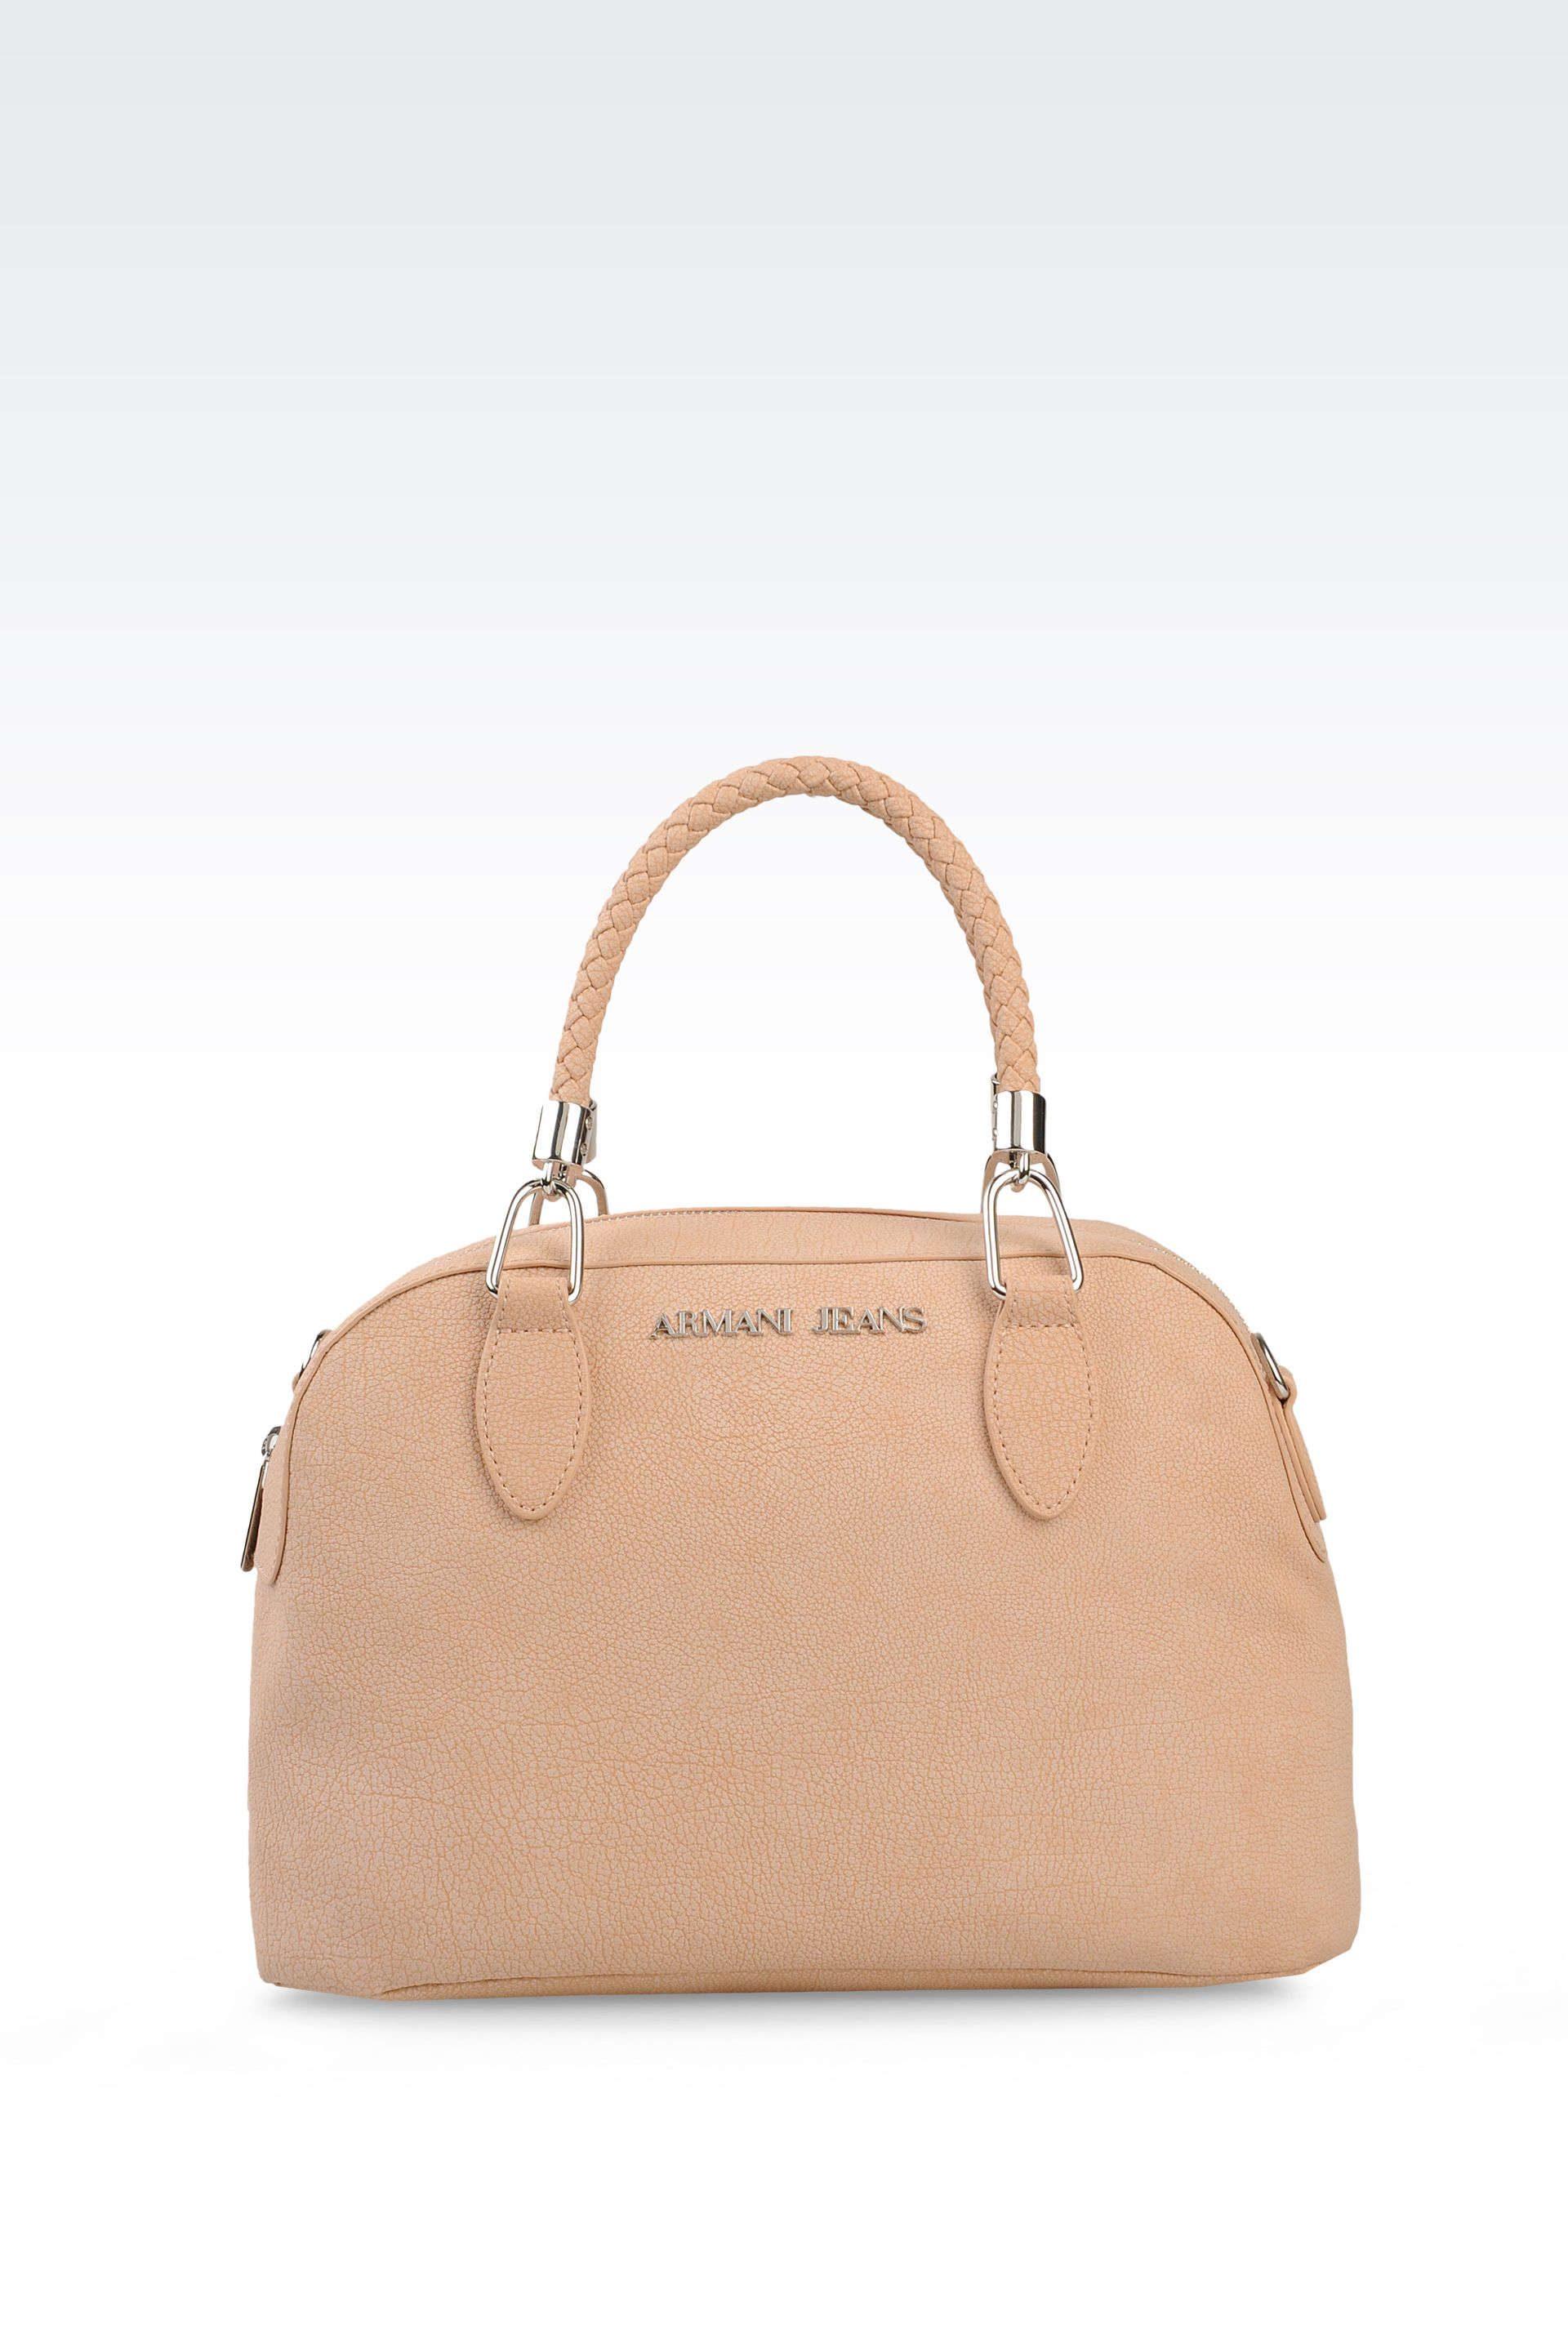 0106c9bb74 Lyst - Armani Jeans Bauletto Bag in Printed Faux Leather in Natural